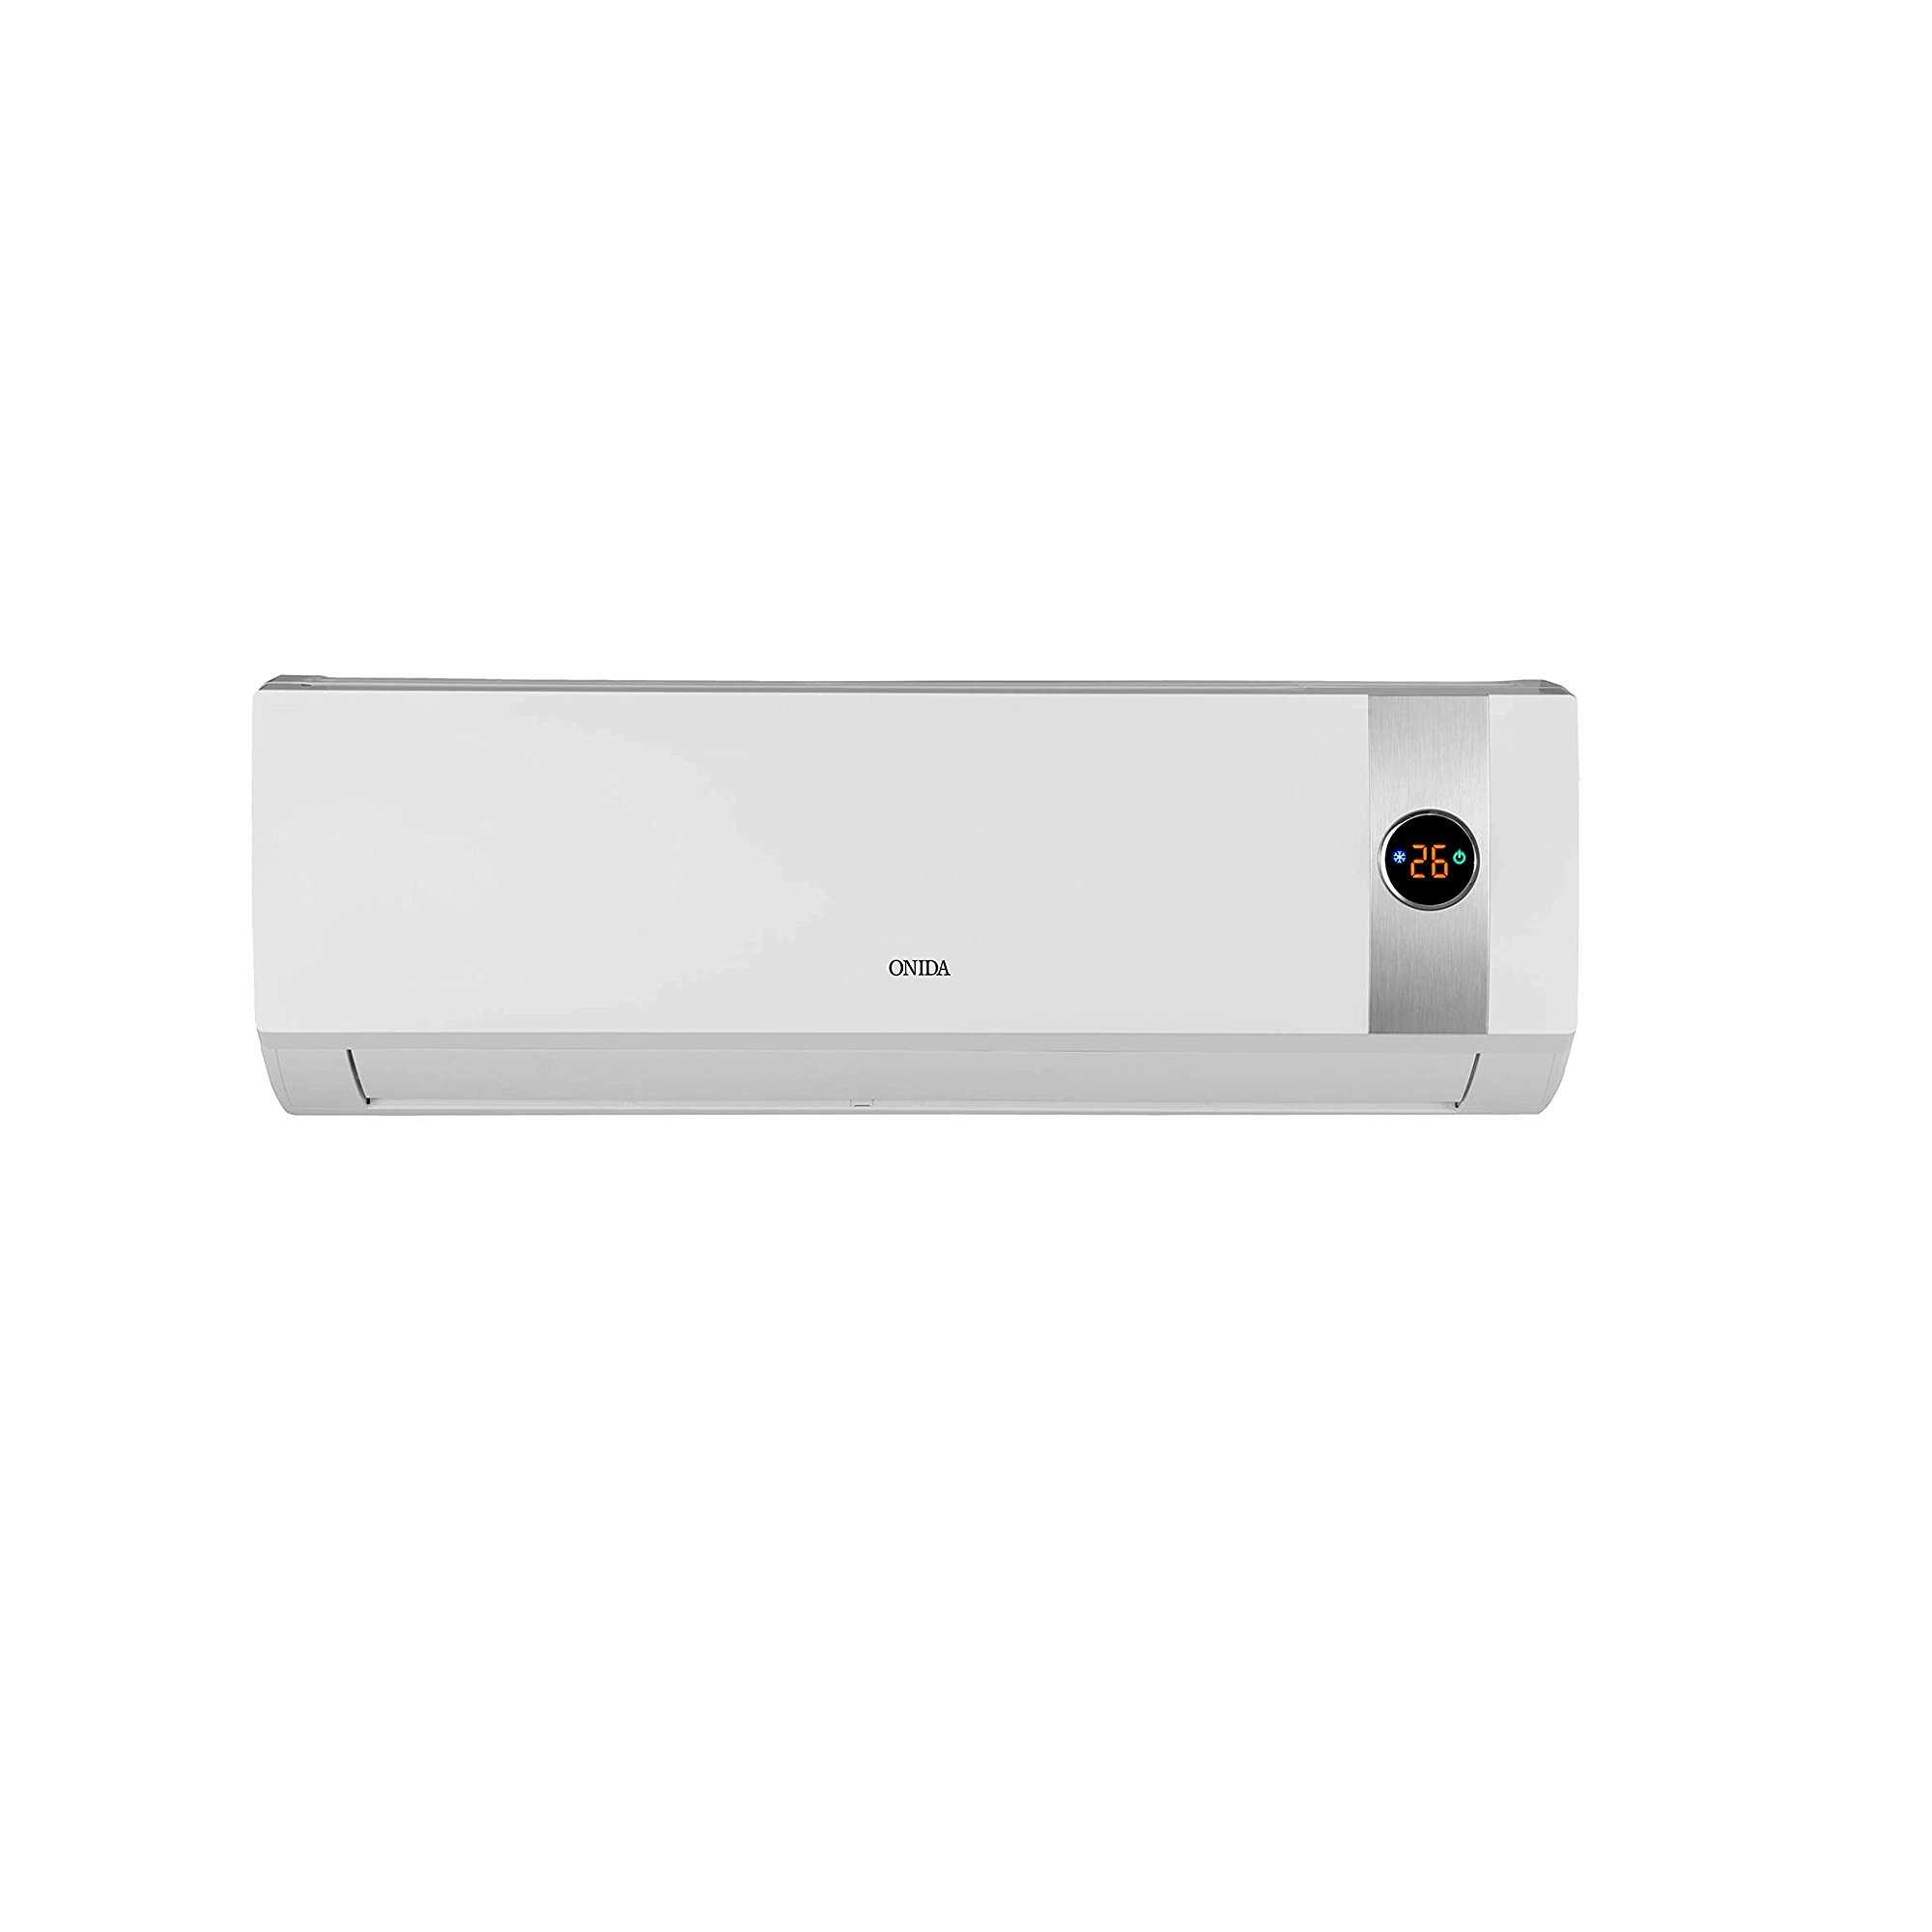 #7C421C Airconditioners Under Rs. 20000 As On Aug 2017 Best 4823 Inverter Window Ac photos with 2000x2000 px on helpvideos.info - Air Conditioners, Air Coolers and more